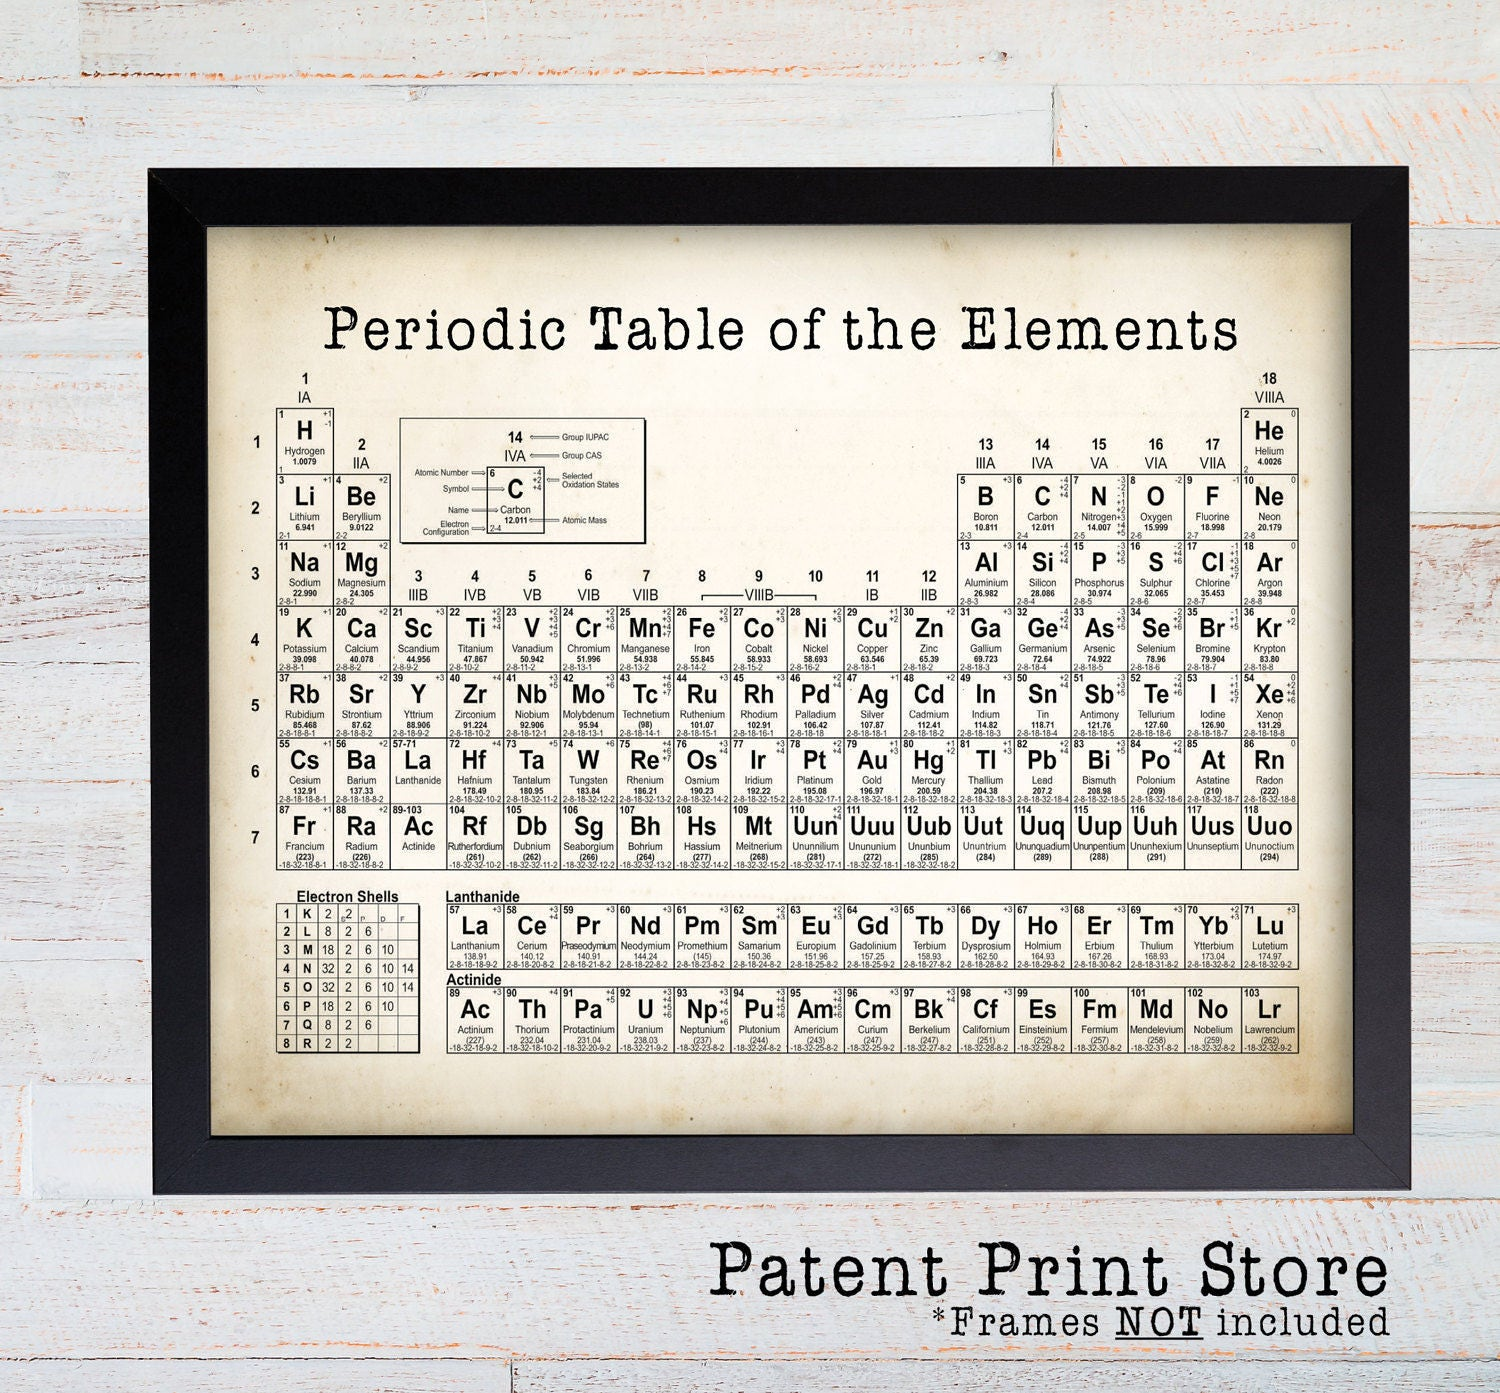 Periodic table of elements science wall art science poster periodic table of elements science wall art science poster chemistry poster science art lab science laboratory organic chemistry 34 urtaz Choice Image